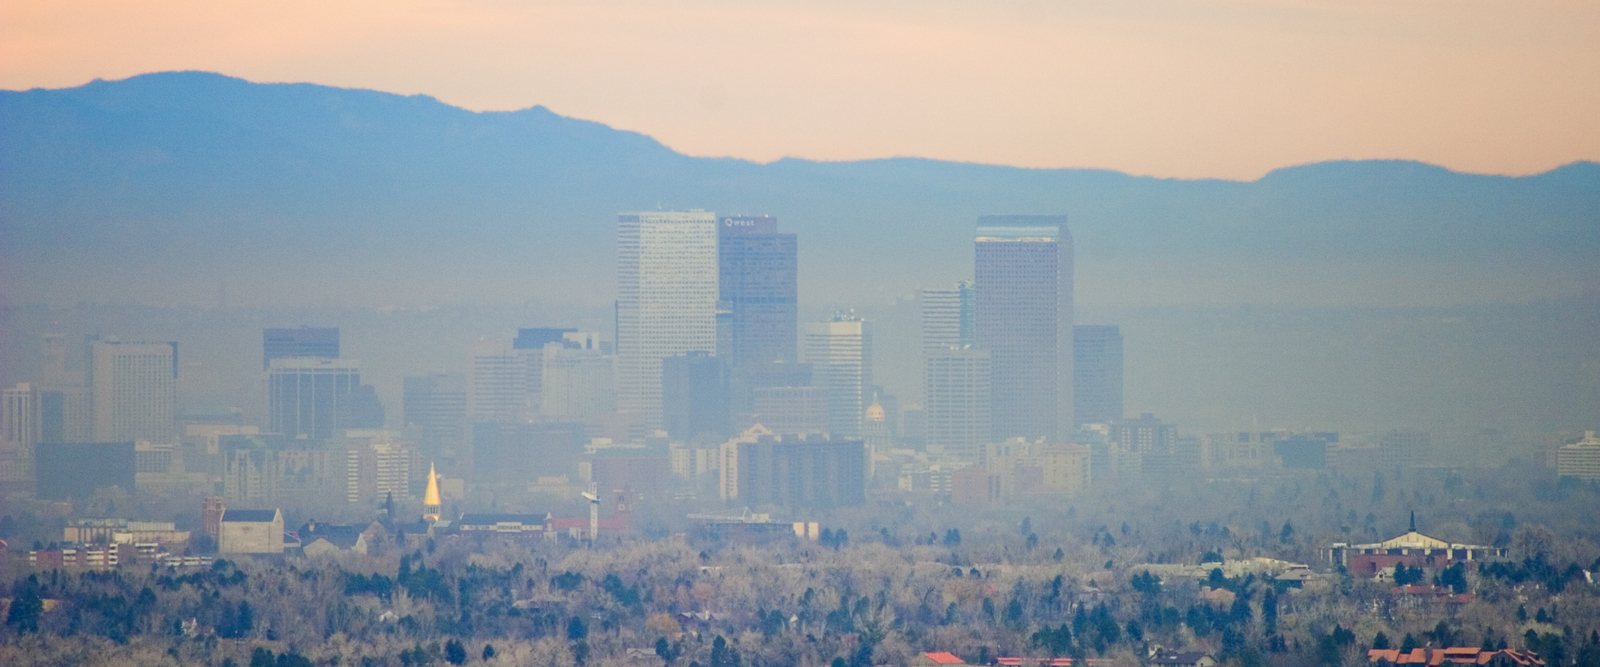 Denver Air Pollution - Denver Skyline